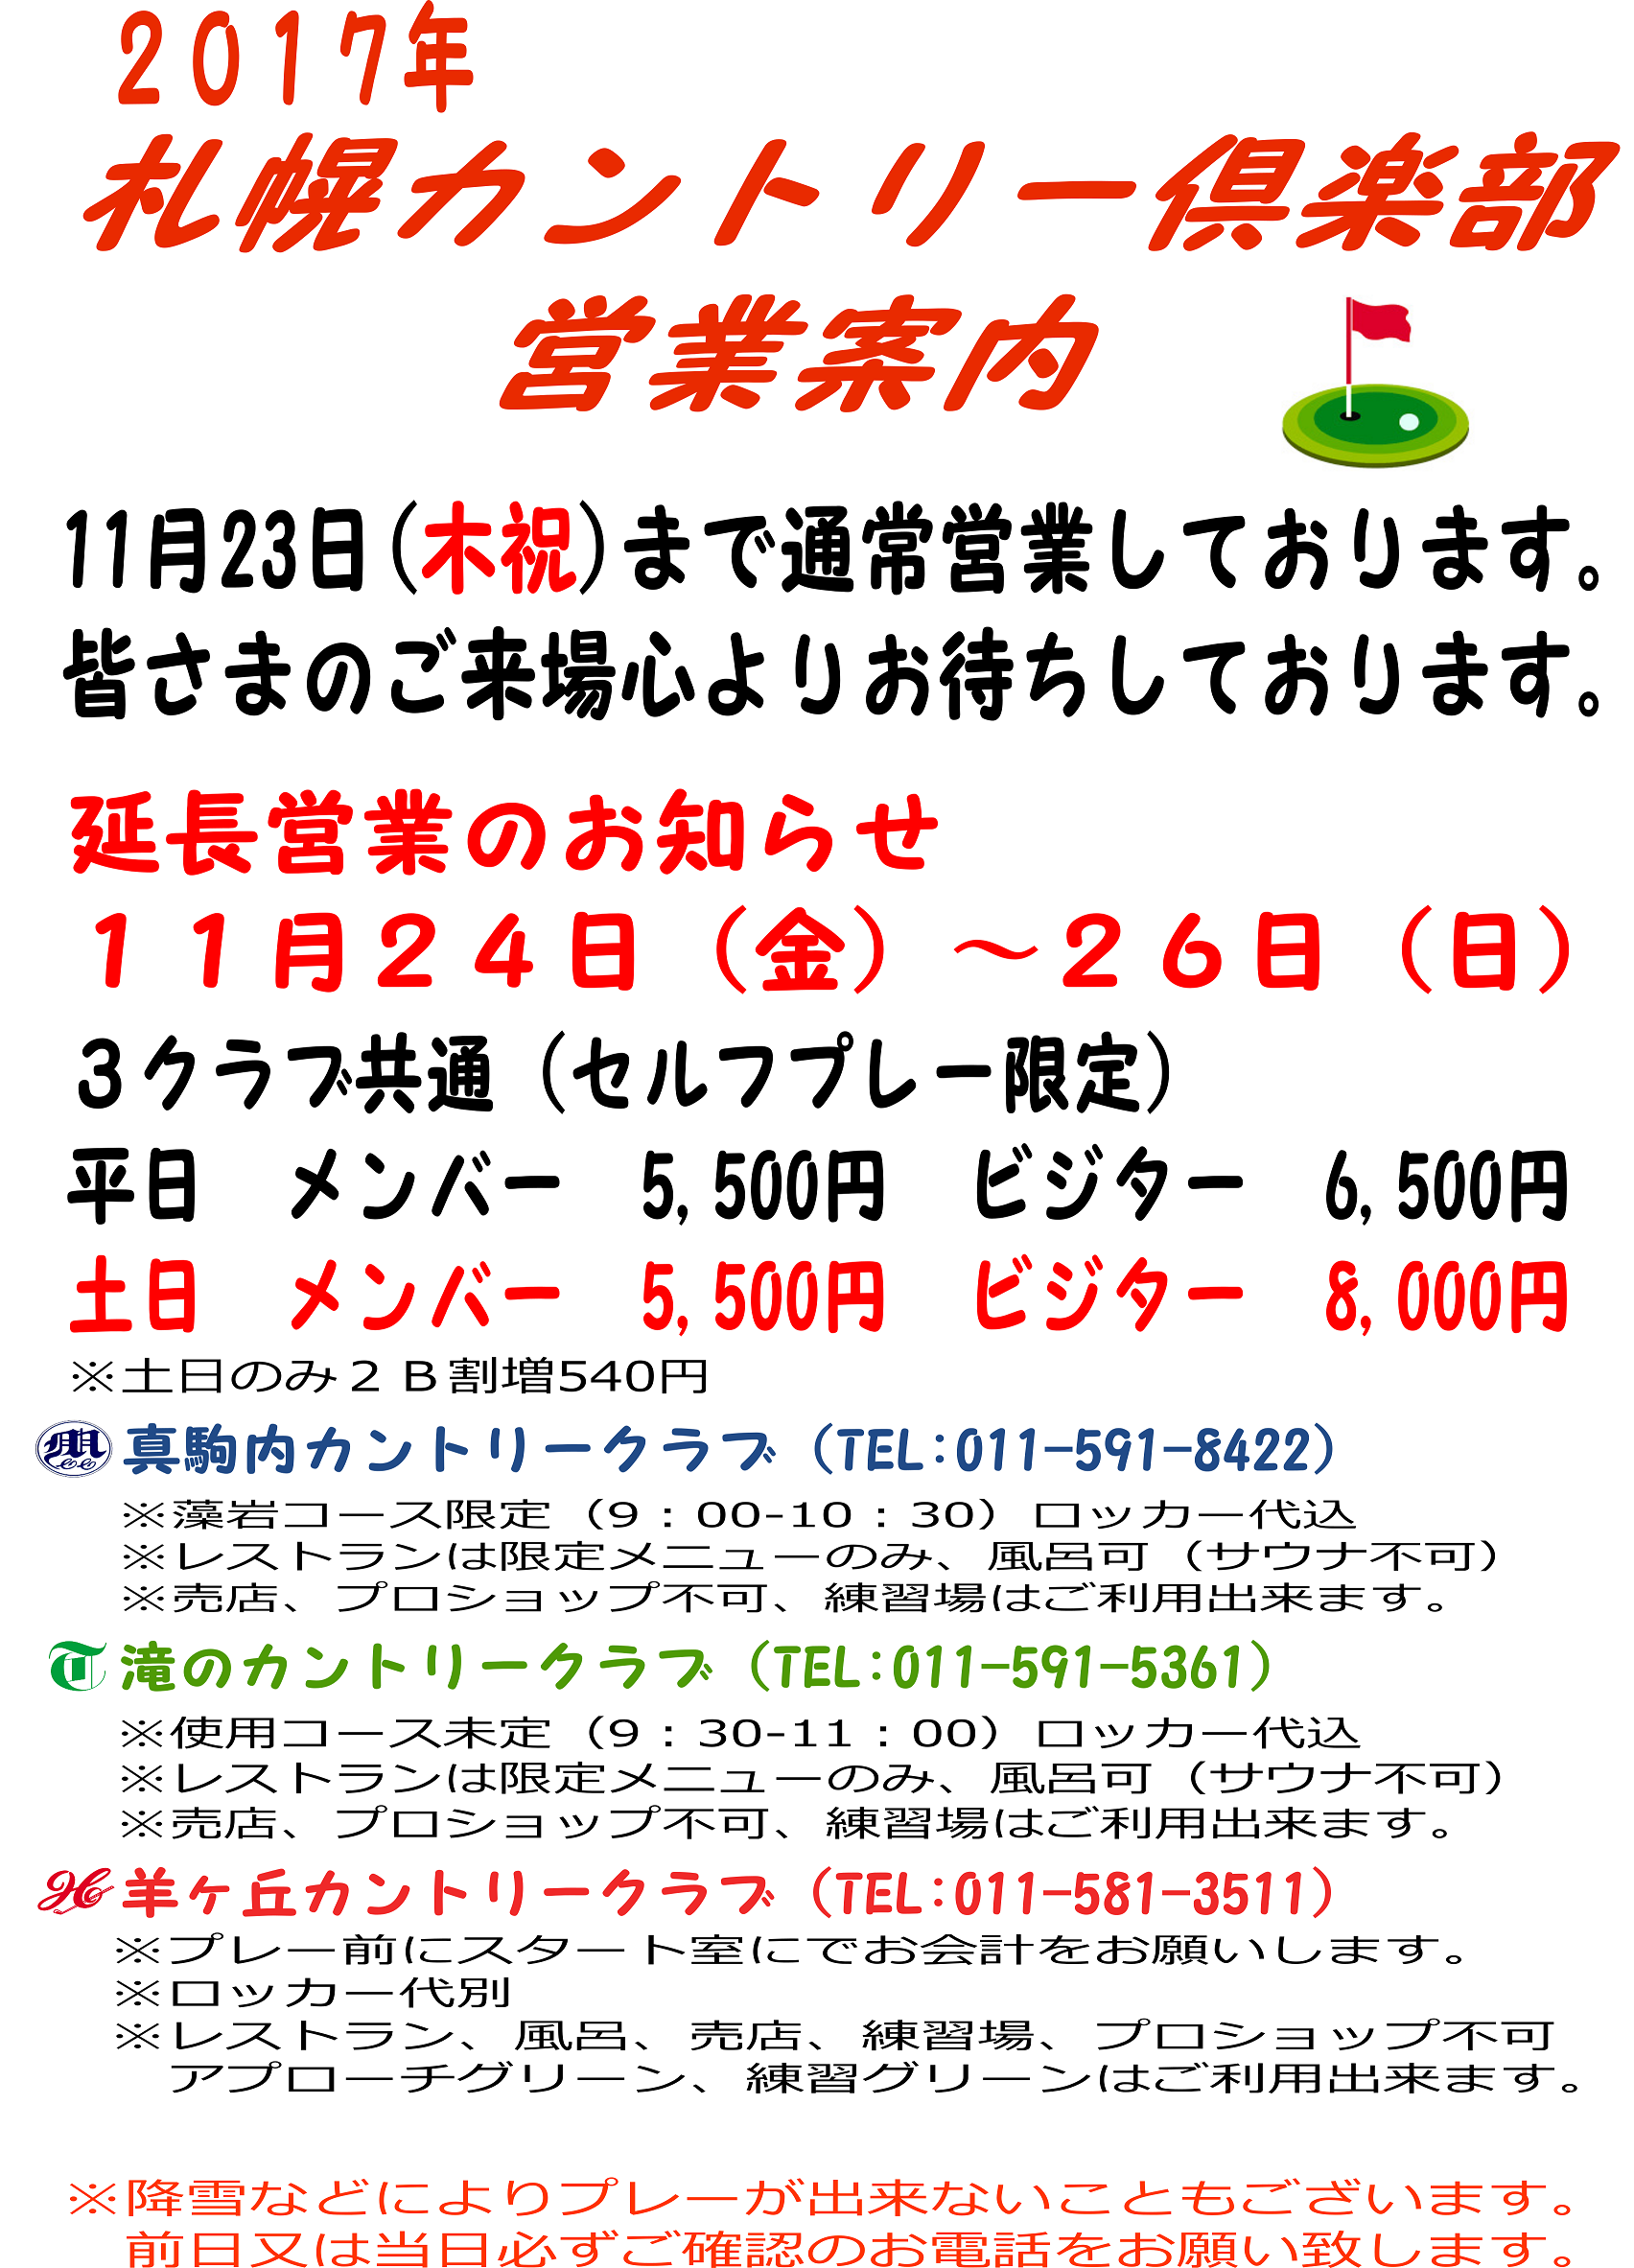 ■11/14UP 札幌カントリー倶楽部延長営業のご案内